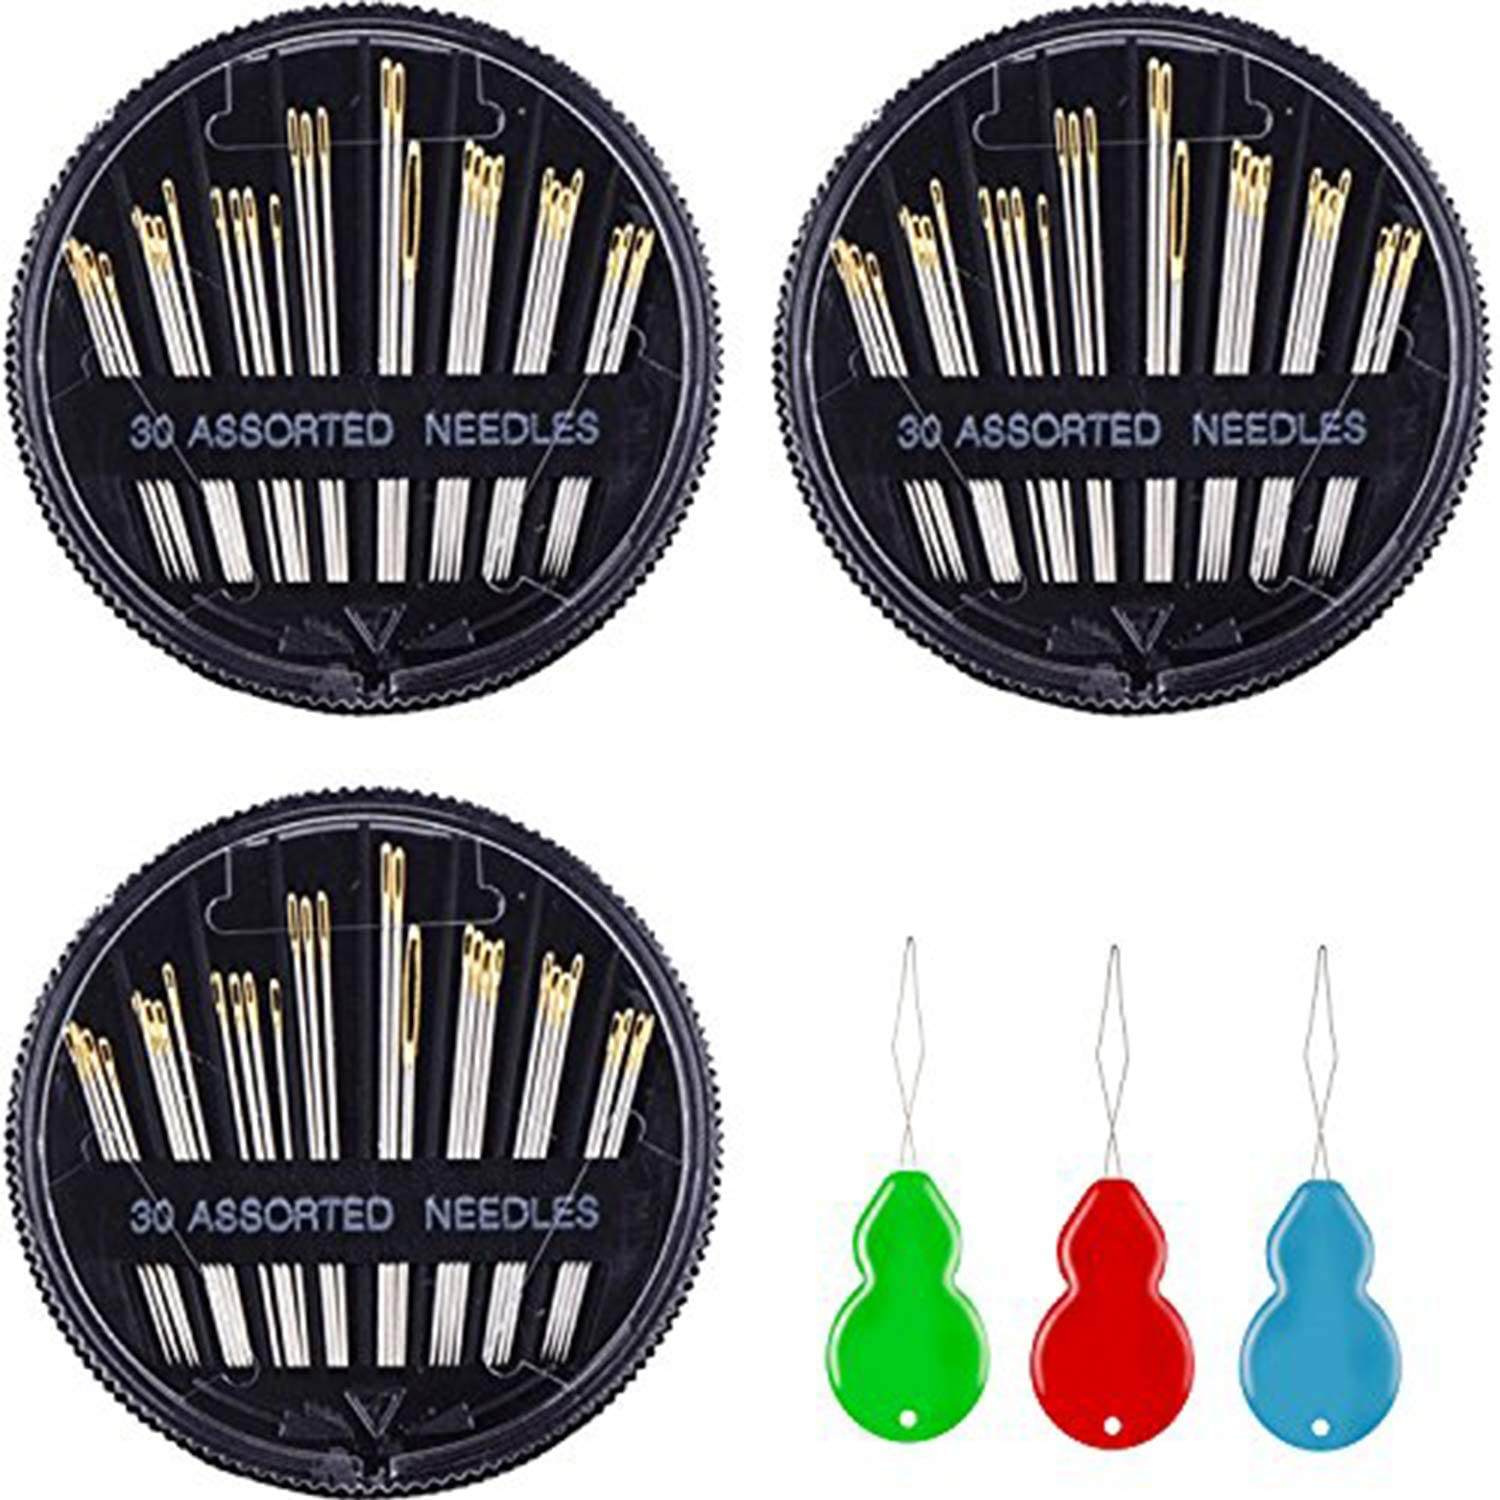 Mudder 30 Count Assorted Hand Needles